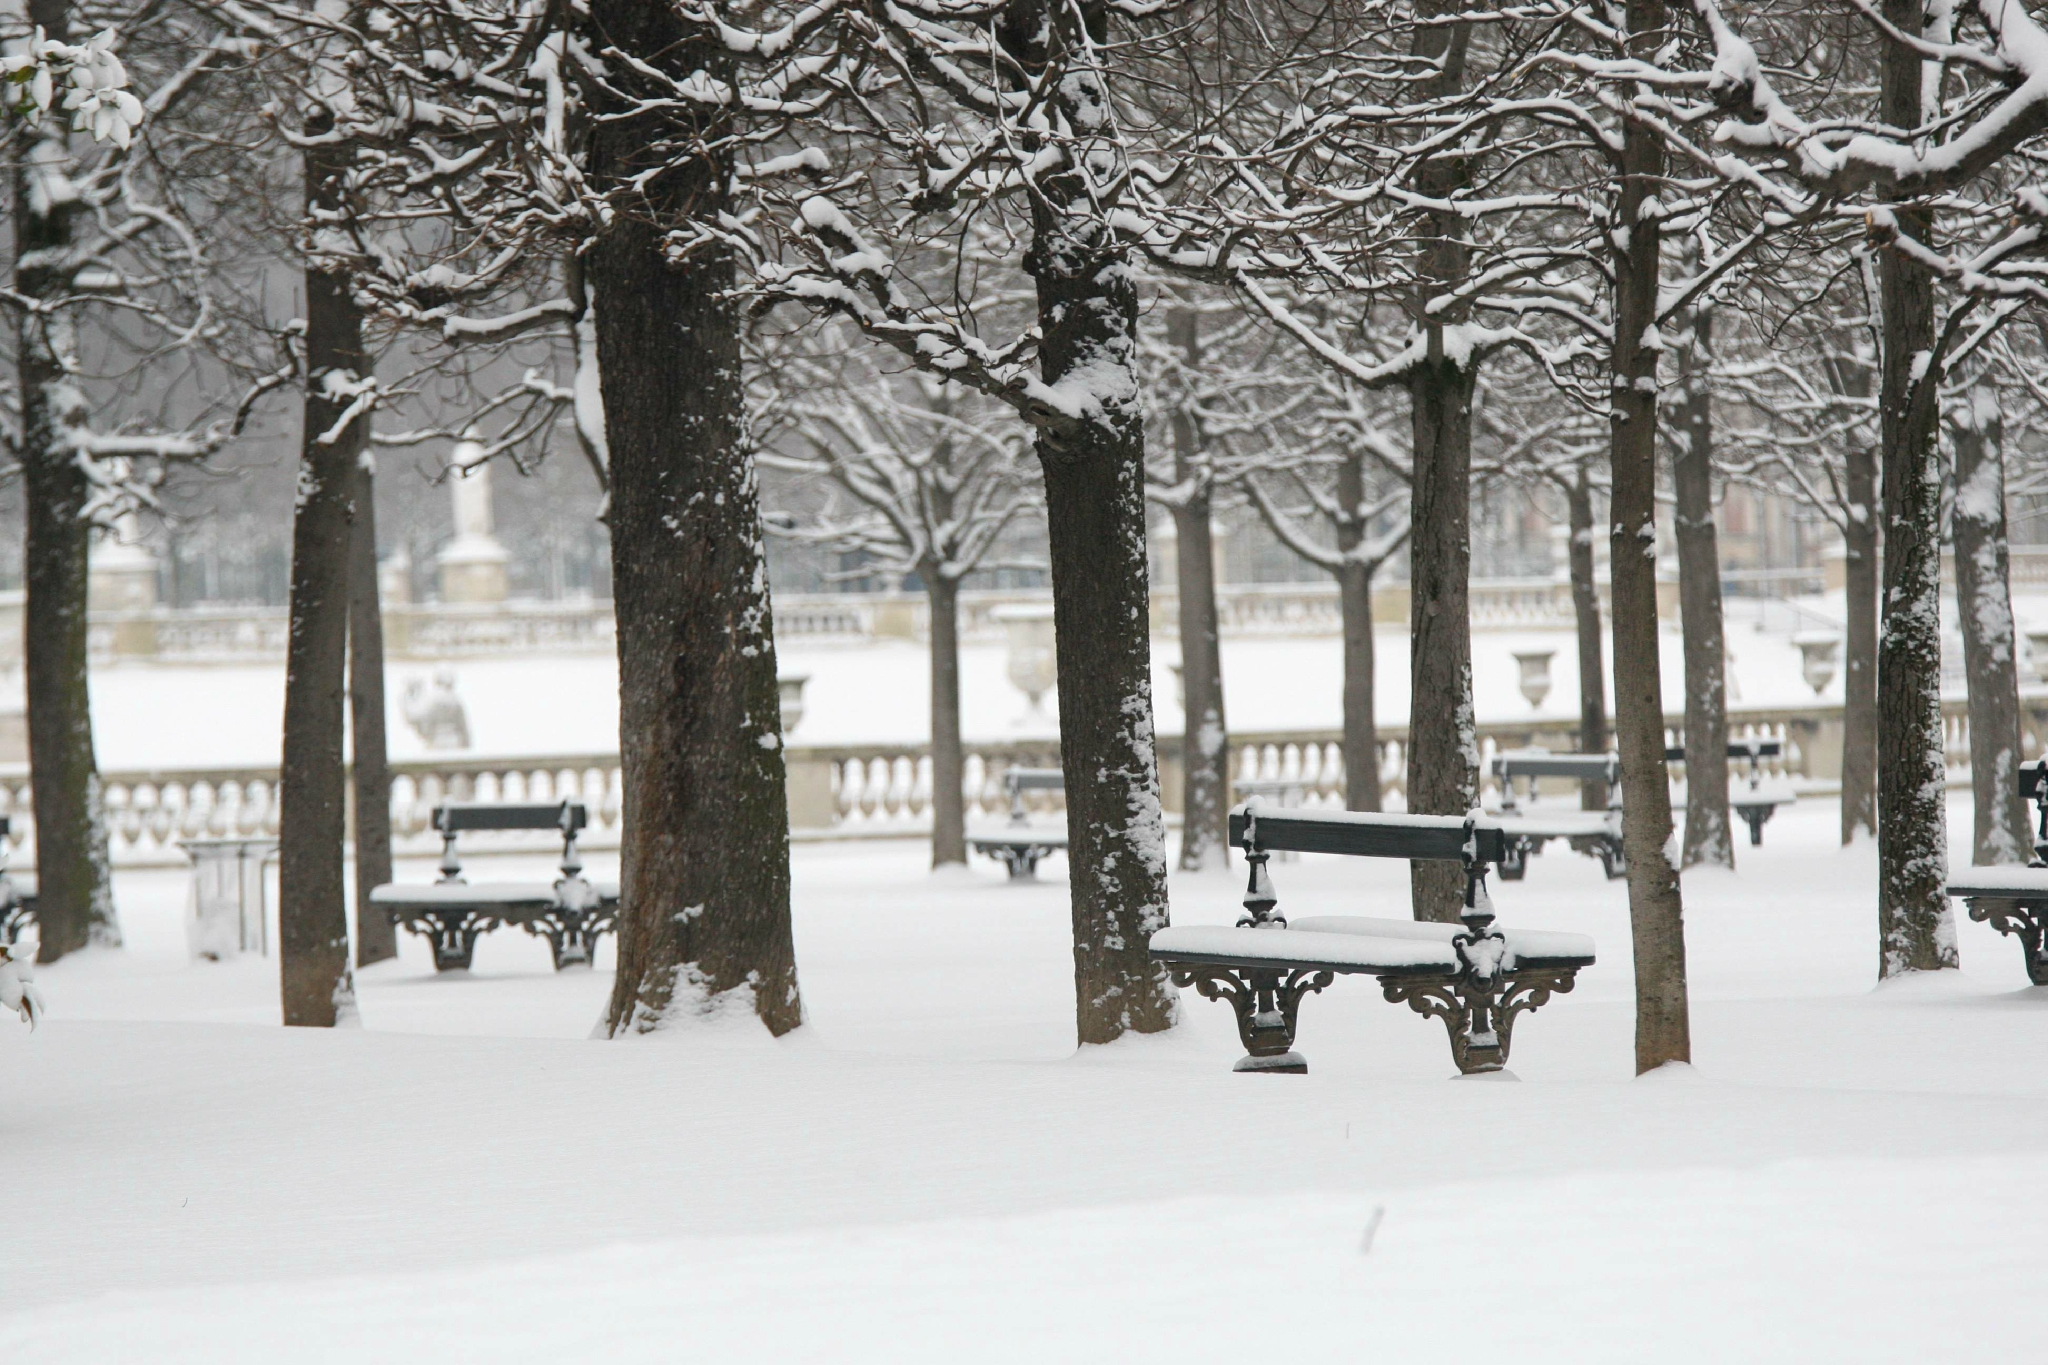 Paris sous la neige. © Photo Michel Stoupak. Sam 19.01.2013, 09:28.